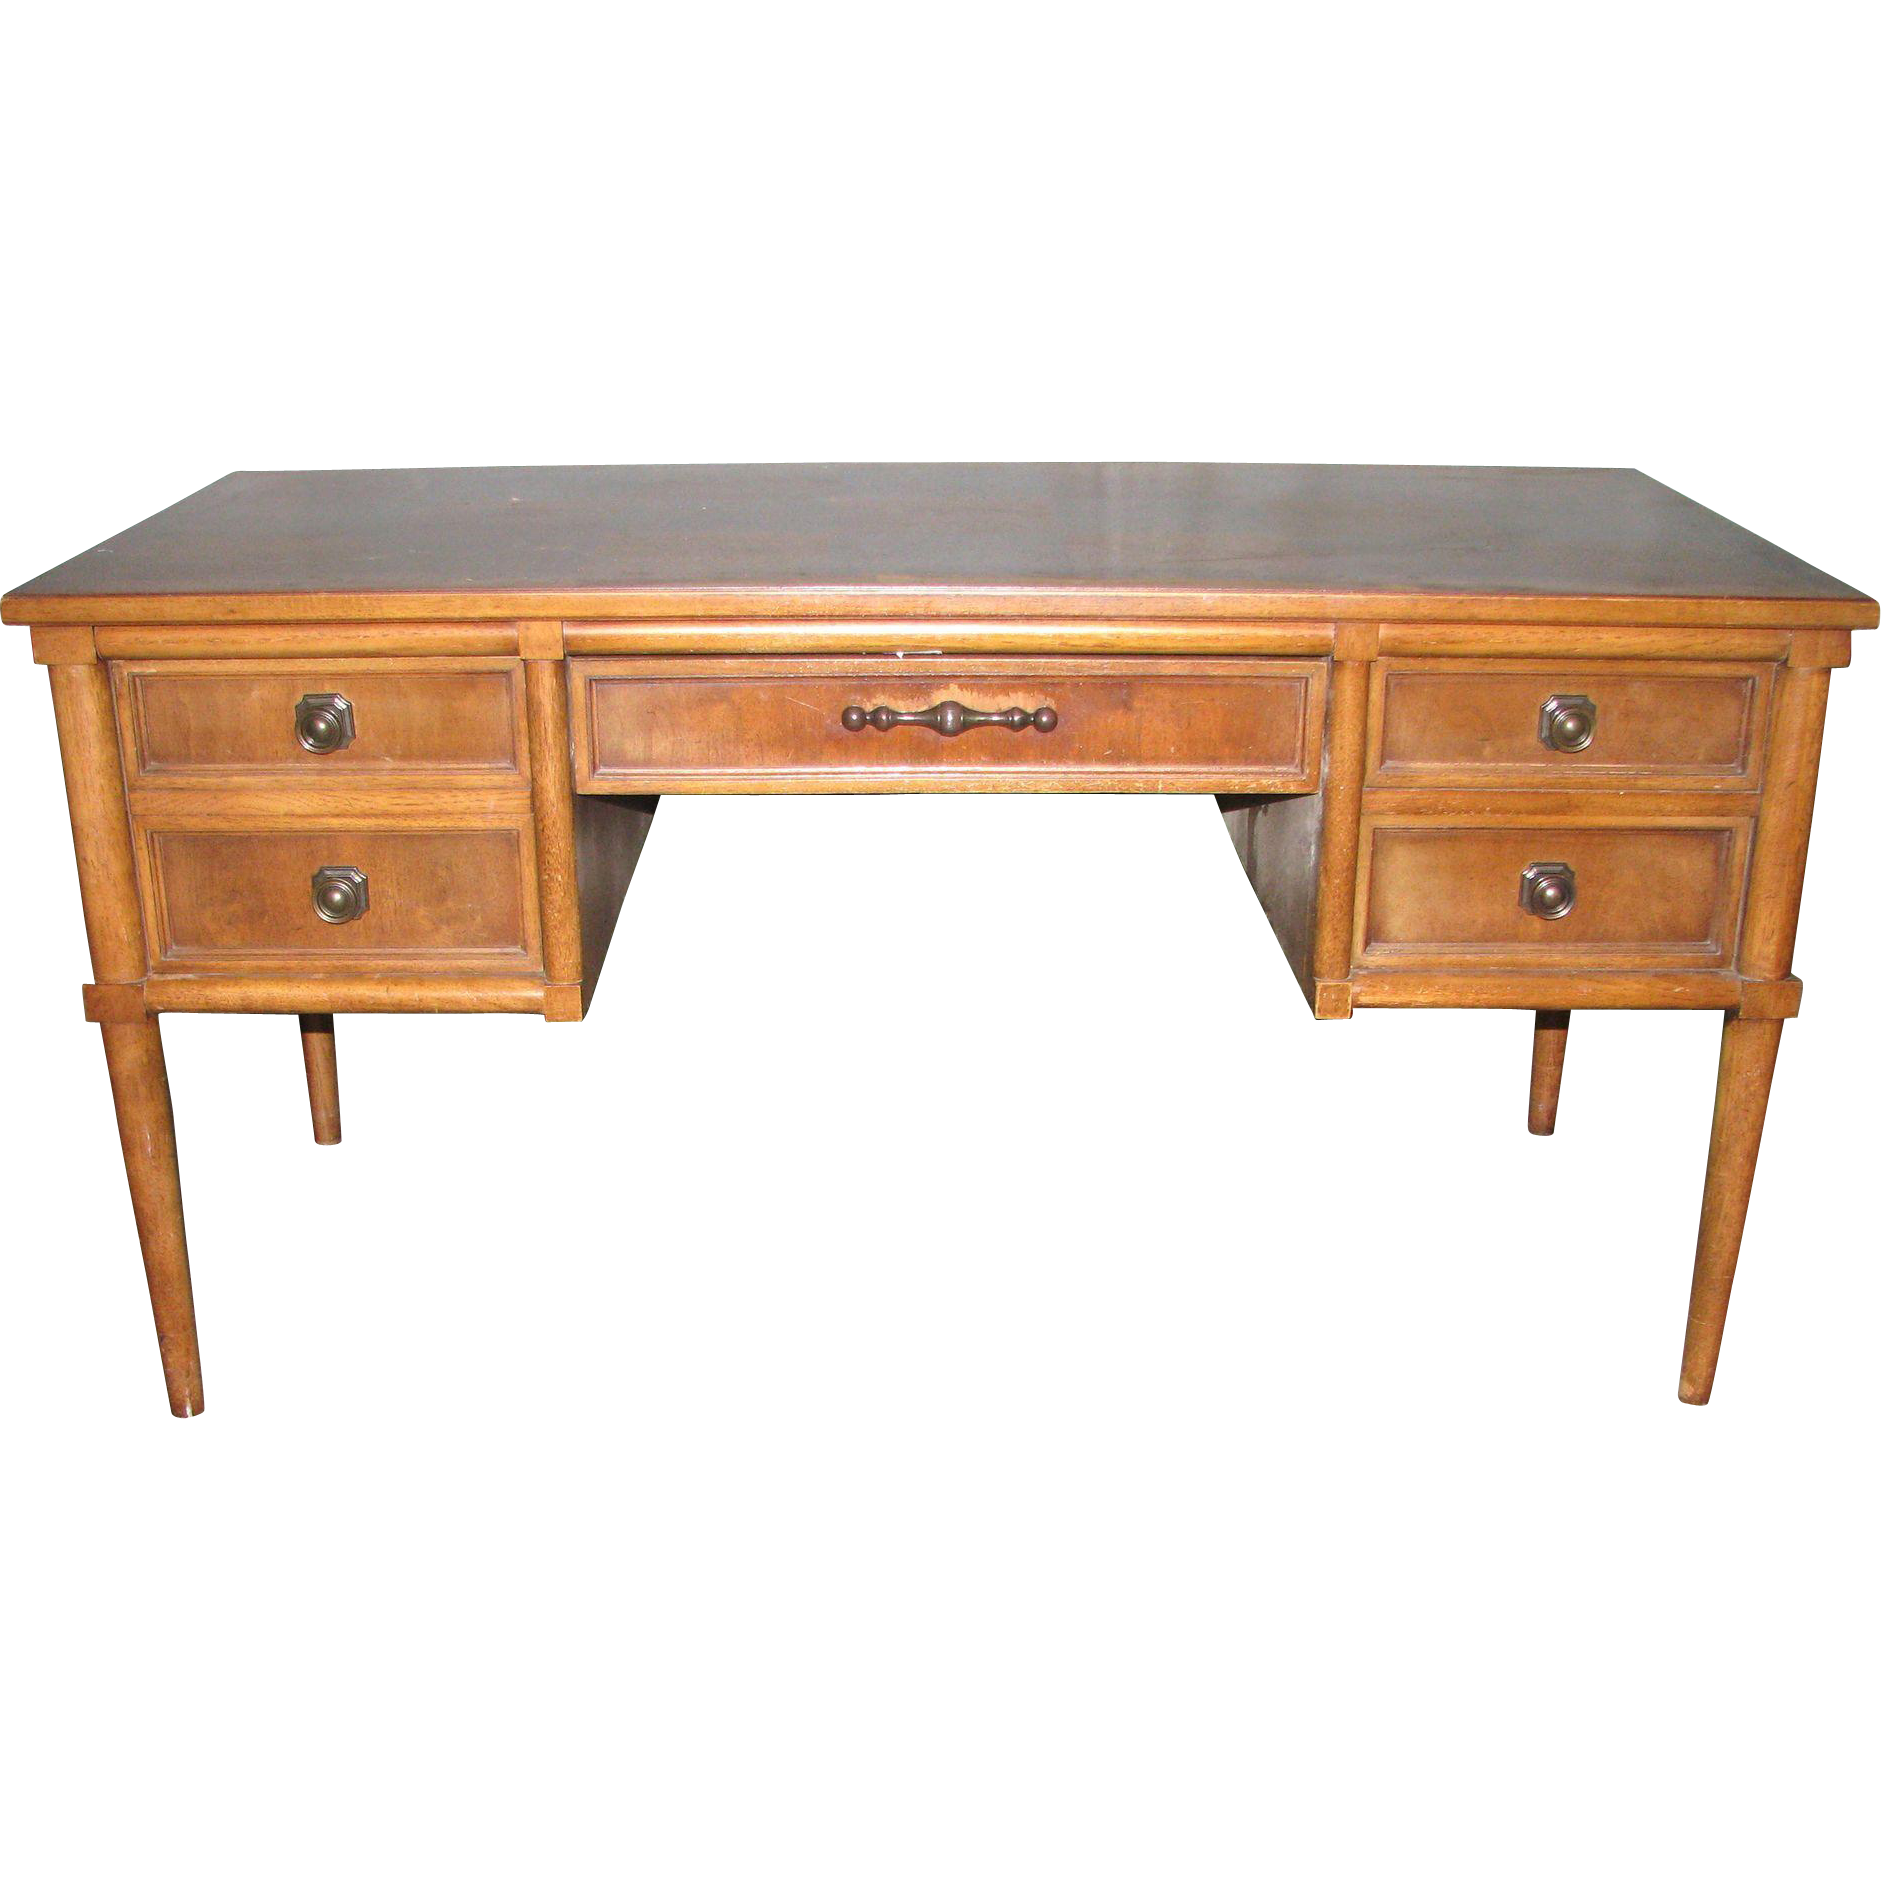 Unique Vintage Wooden Desk With Checkerboard Patterned Top From . Full resolution‎  portrait, nominally Width 1881 Height 1881 pixels, portrait with #C47507.